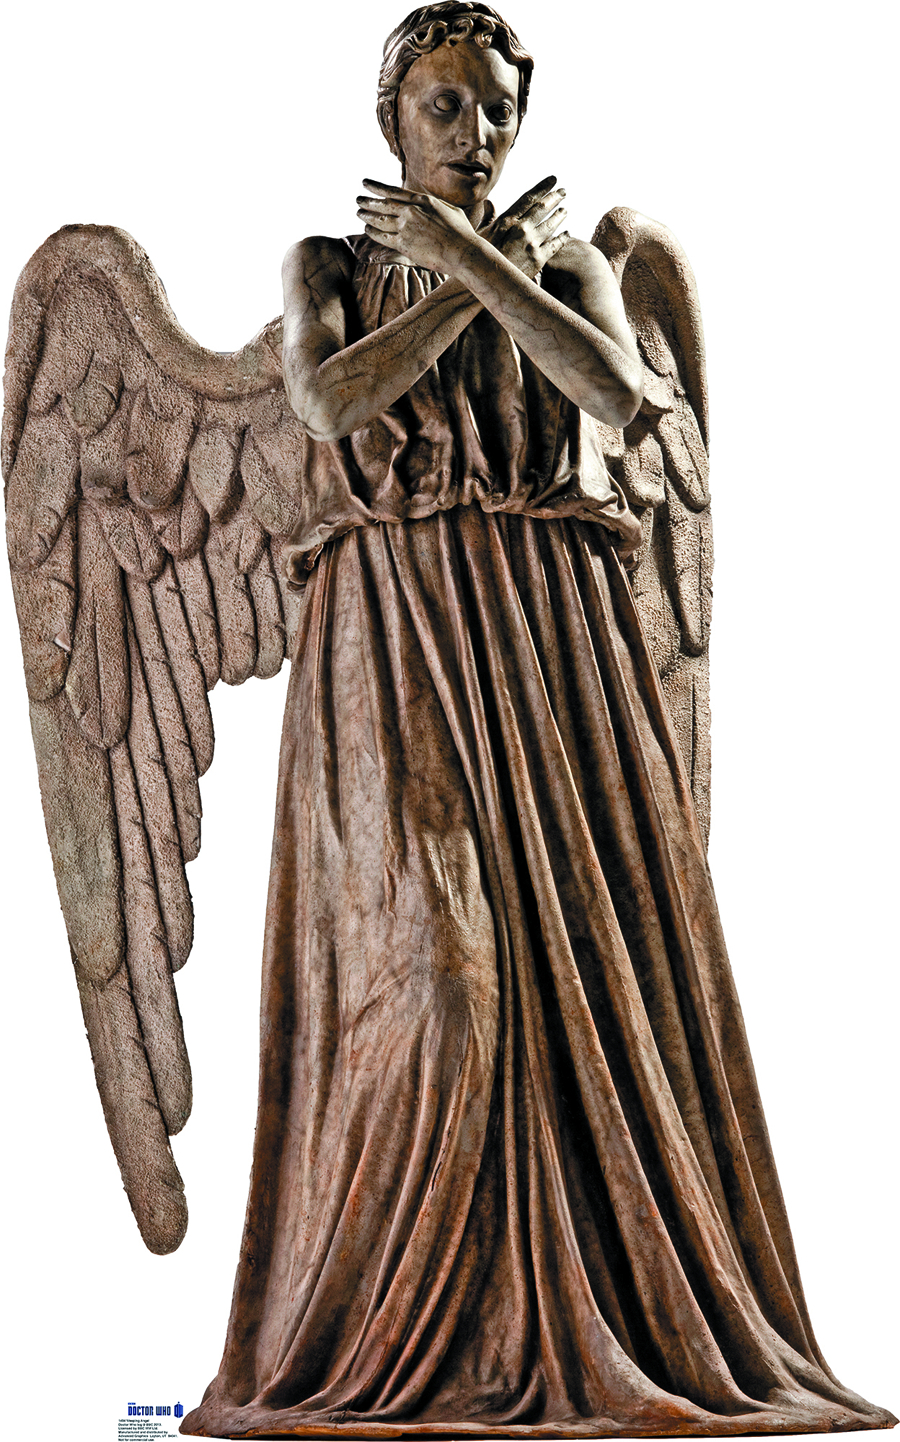 DOCTOR WHO WEEPING ANGEL LIFE-SIZE STANDUP